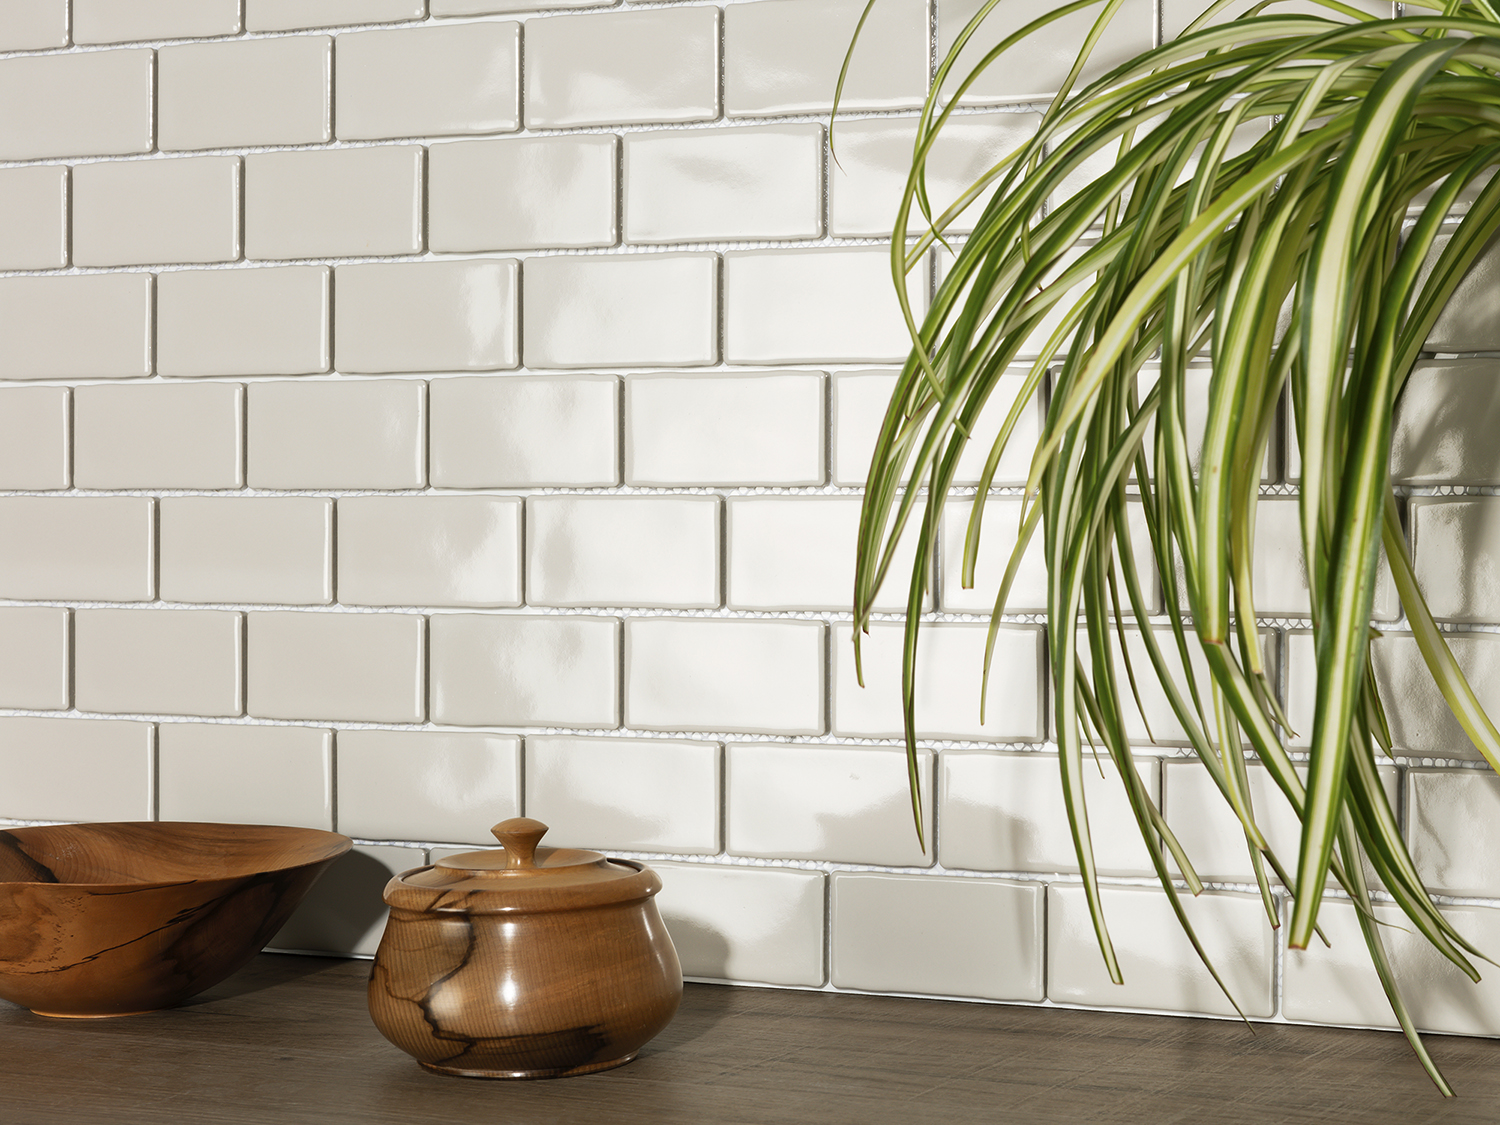 Mesh Backed Porcelain Wall Tiles